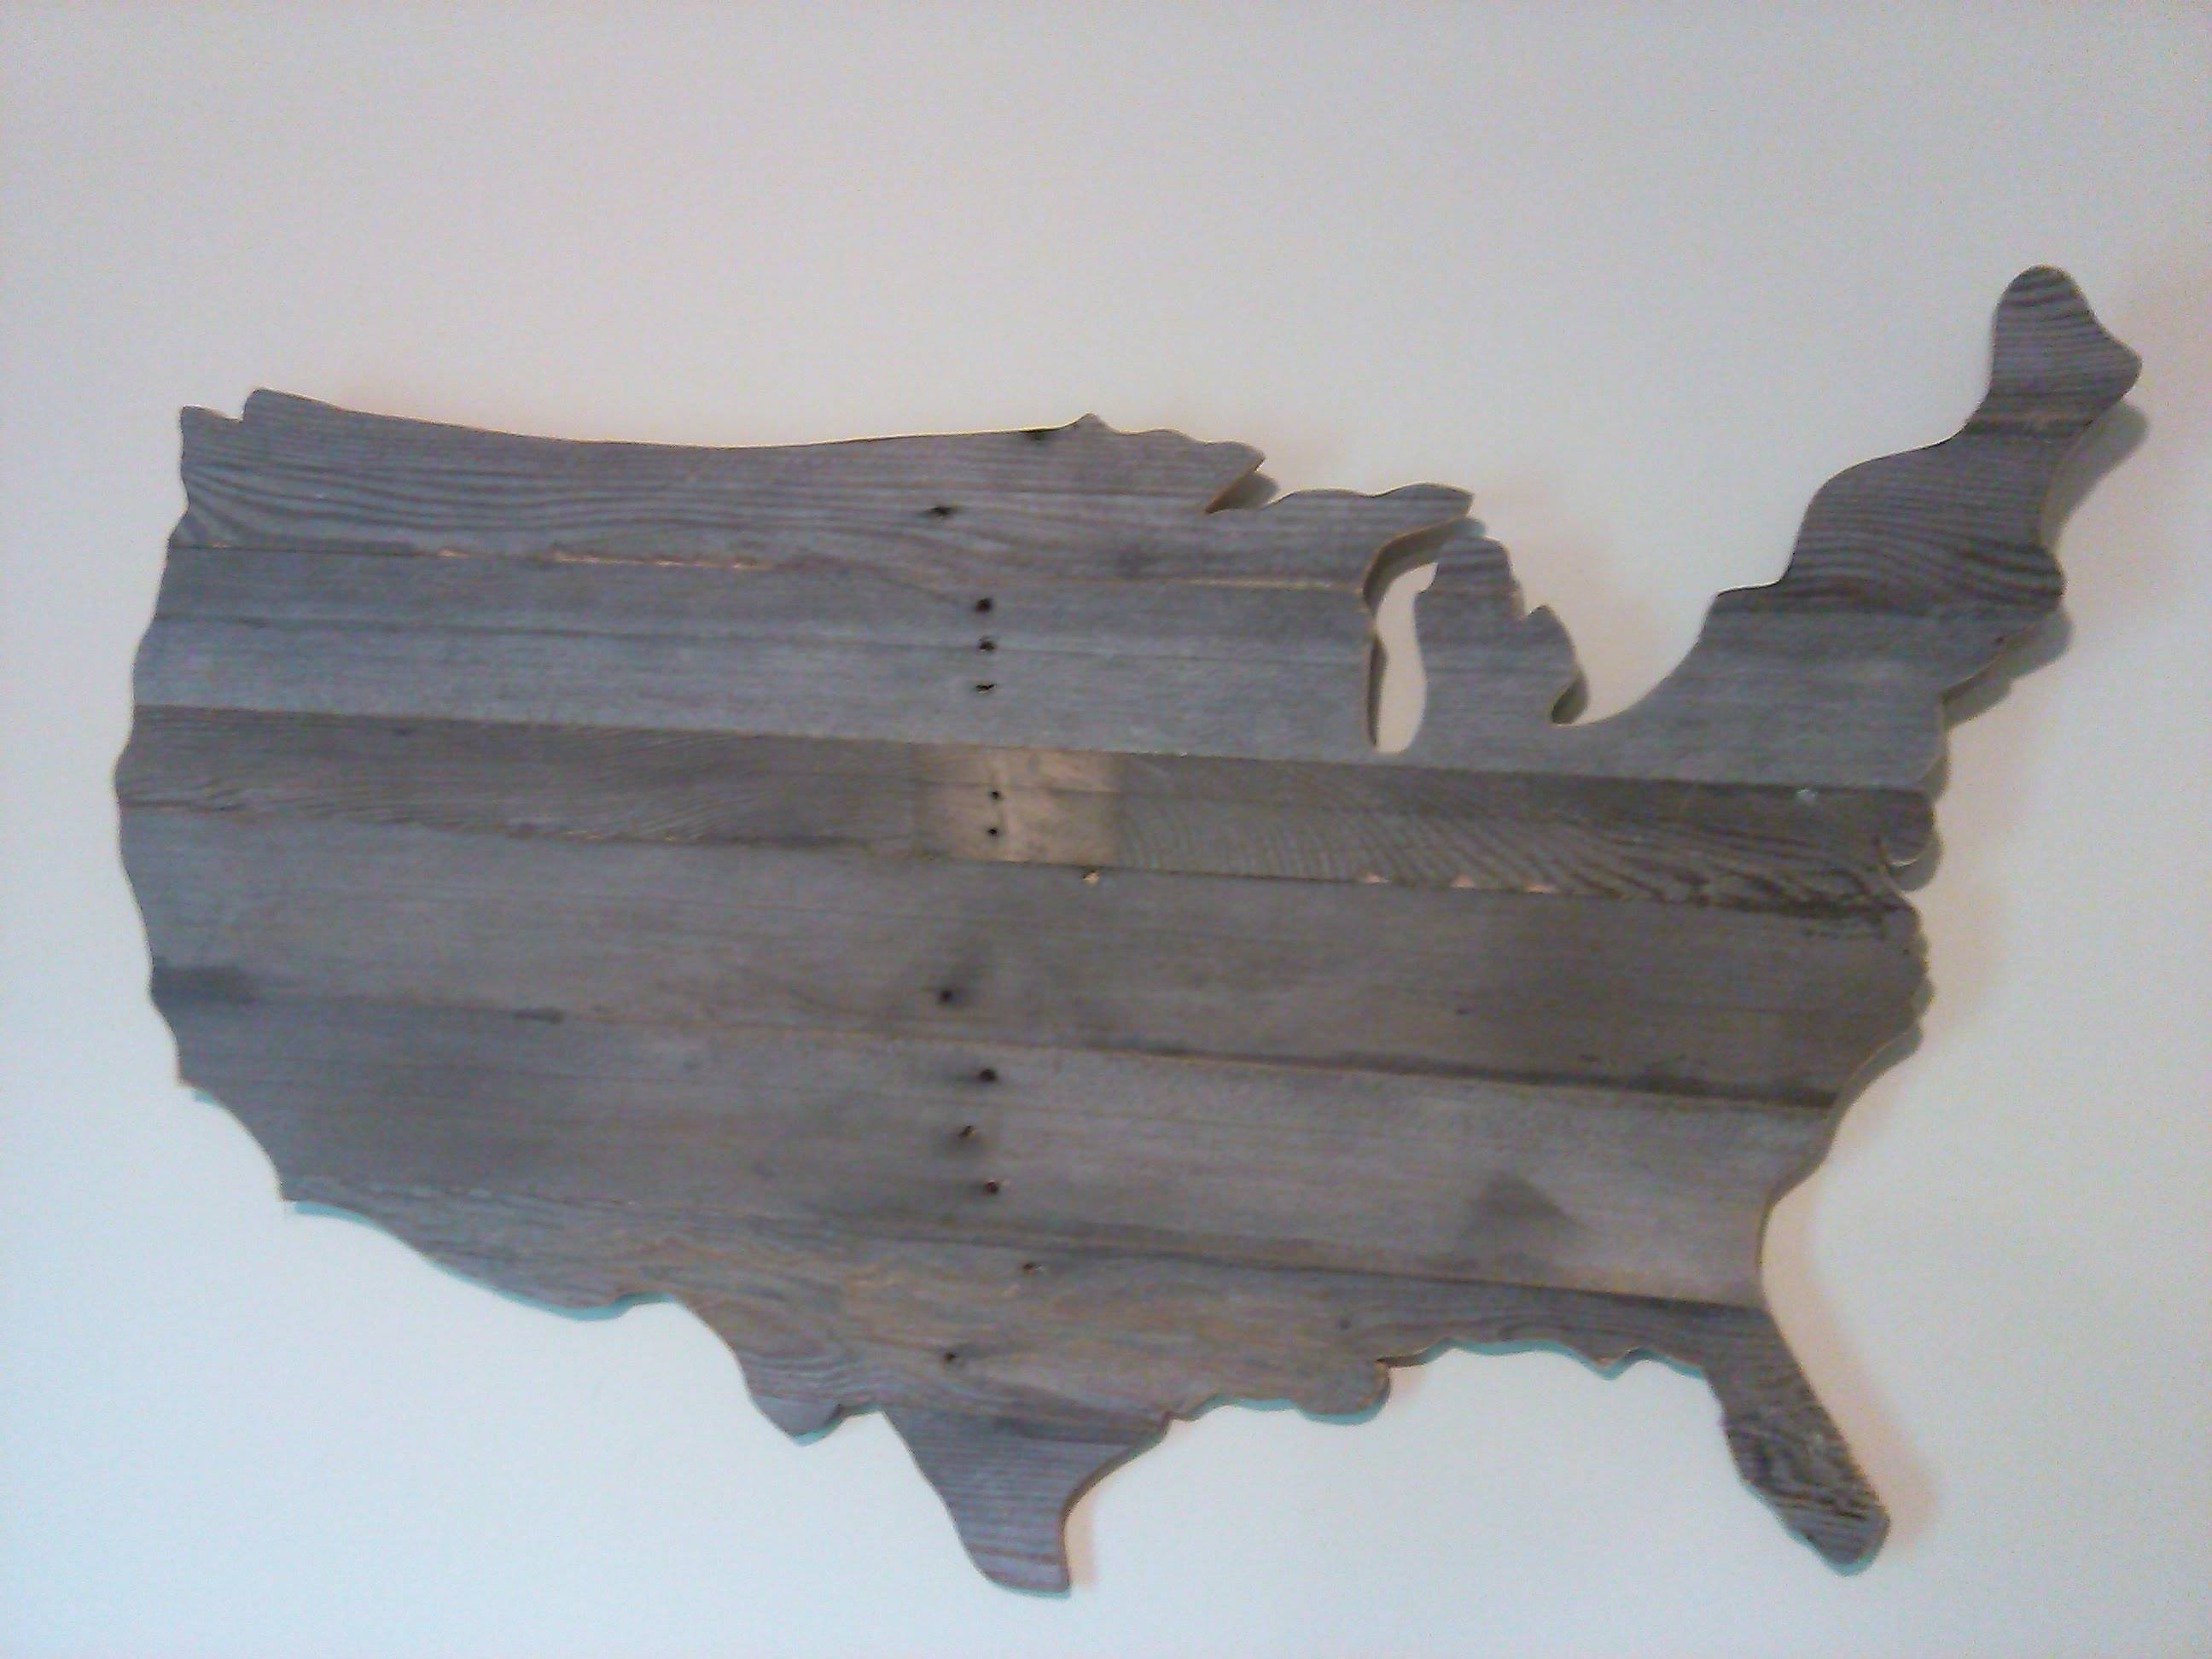 How To Make A Wooden Usa Map Wall Art Out Of Pallets – Youtube Throughout Best And Newest Usa Map Wall Art (View 3 of 20)